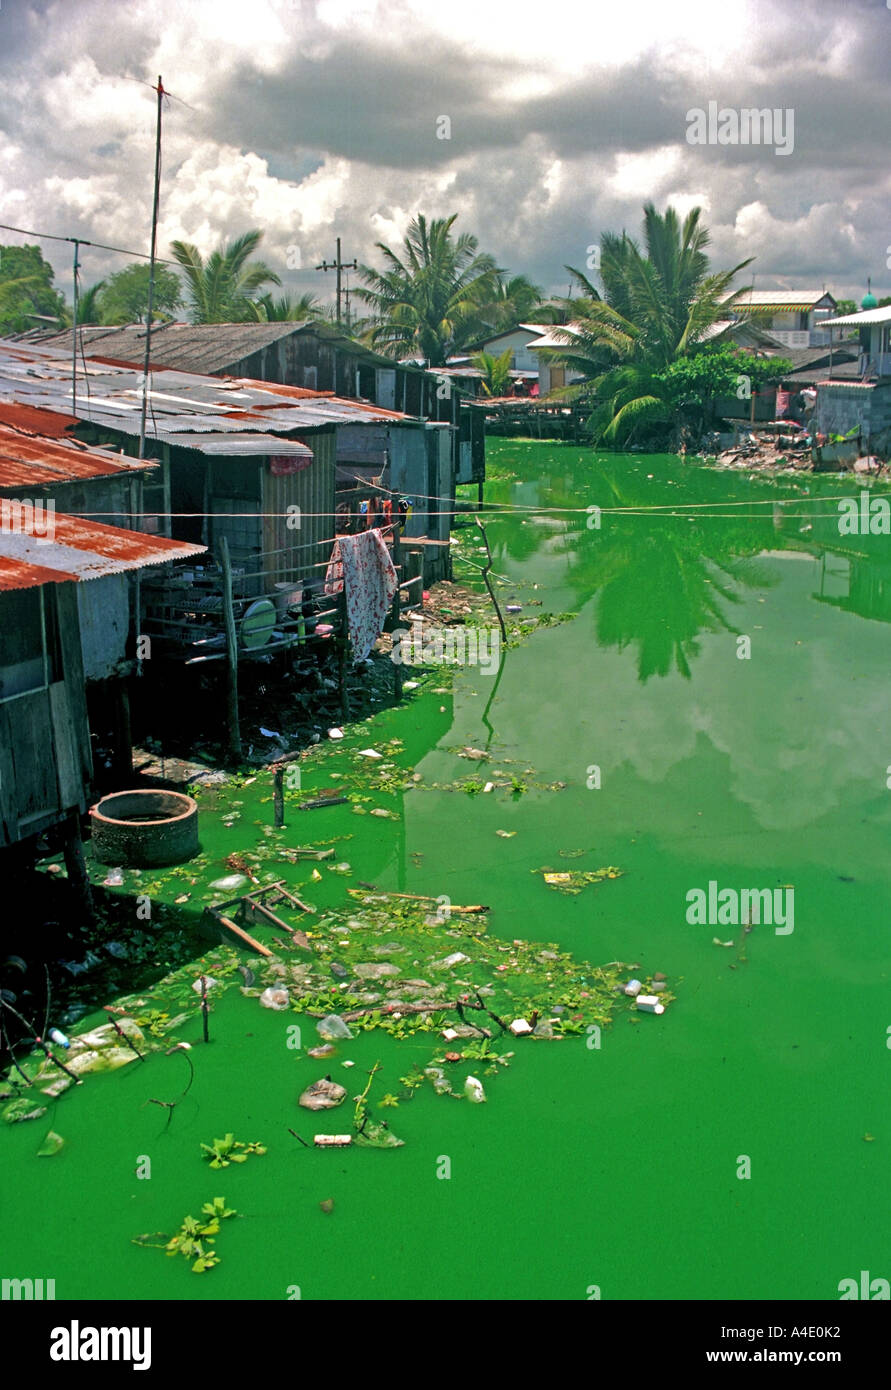 Polluted water at Kao Seng, a village south of Songkhla, southern Thailand. EA7 Stock Photo